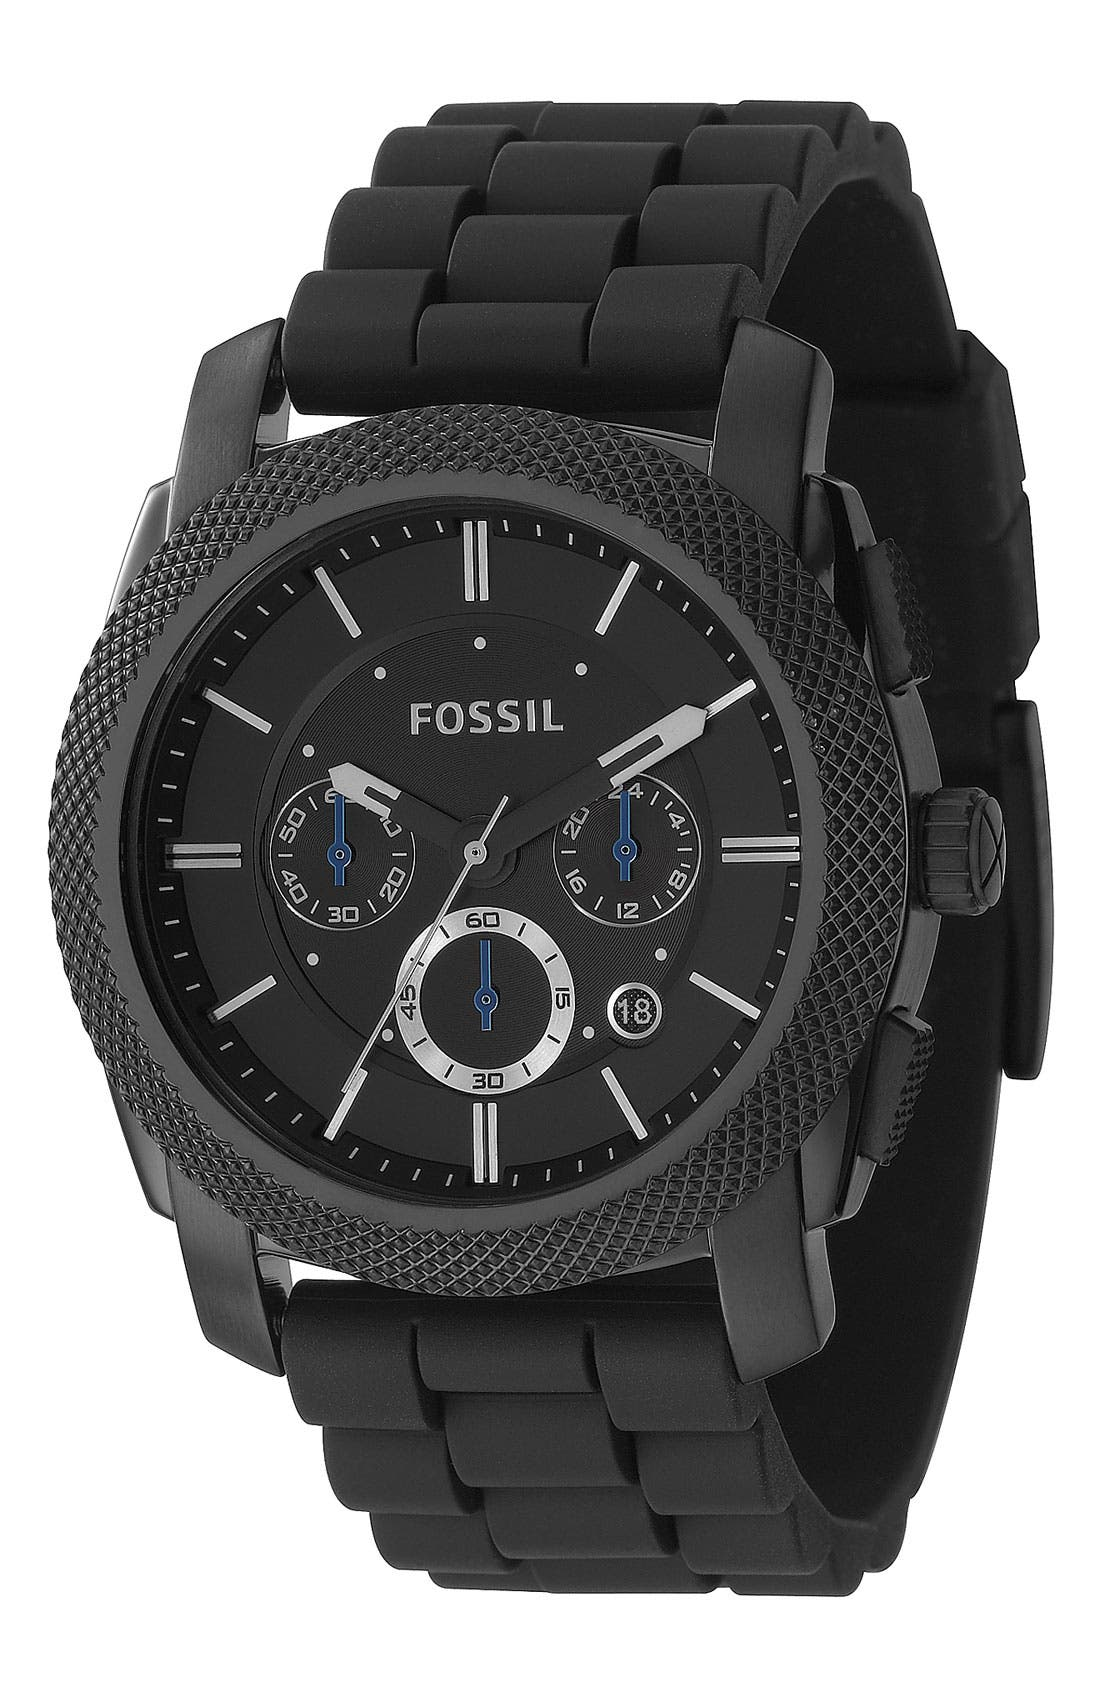 Main Image - Fossil 'Machine' Chronograph Silicone Strap Watch, 45mm